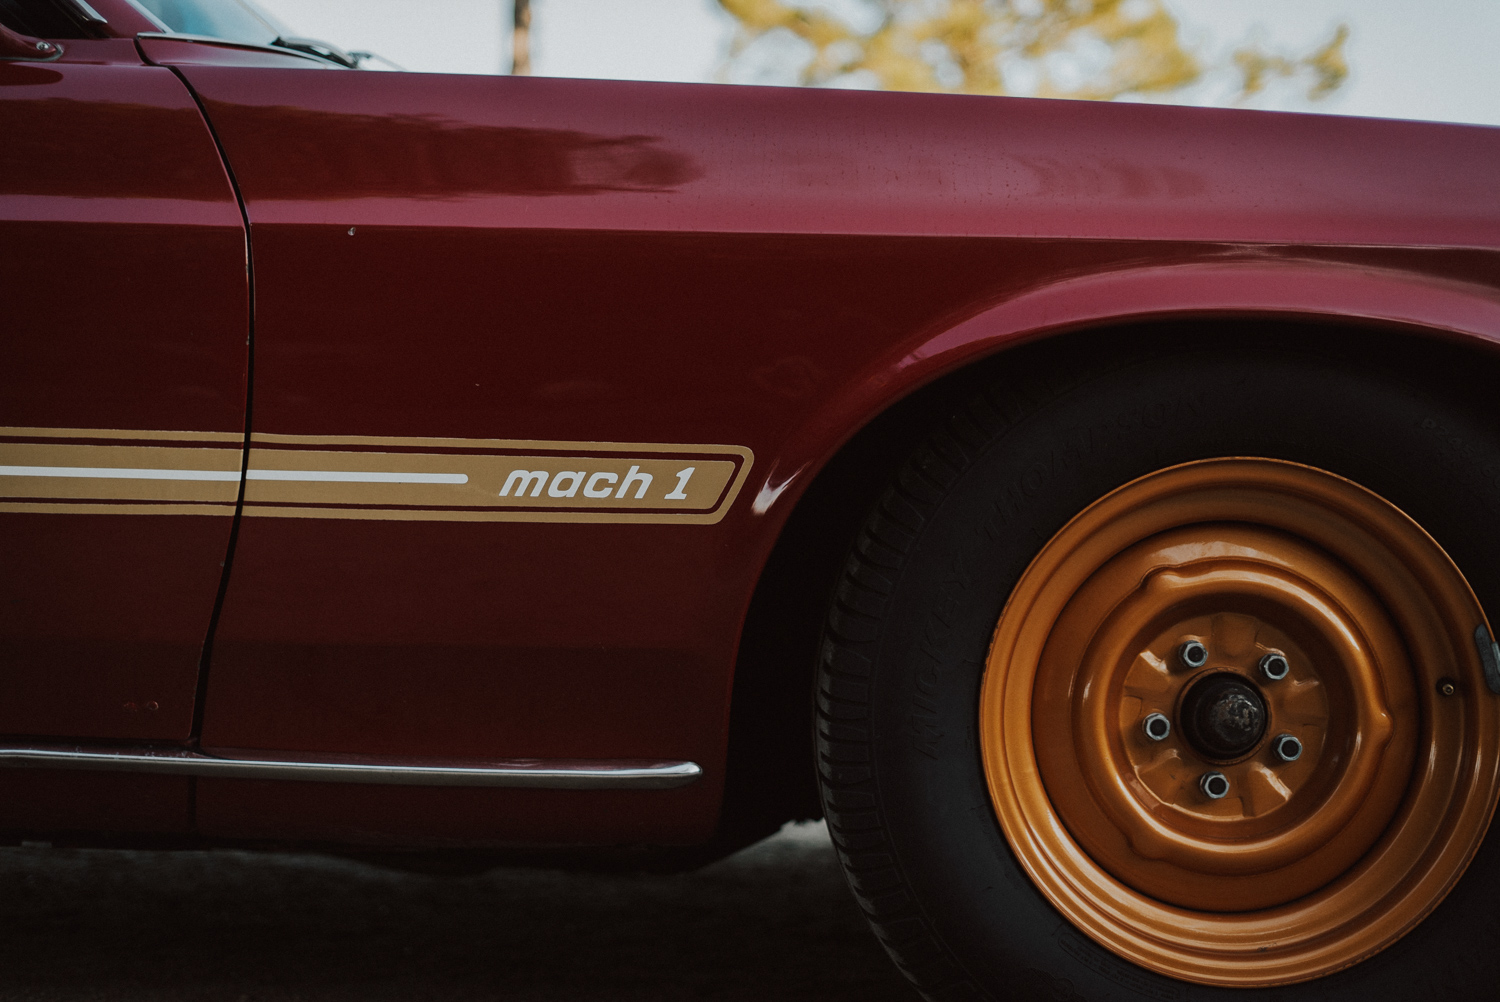 1969 Ford Mustang Mach 1 front wheel detail